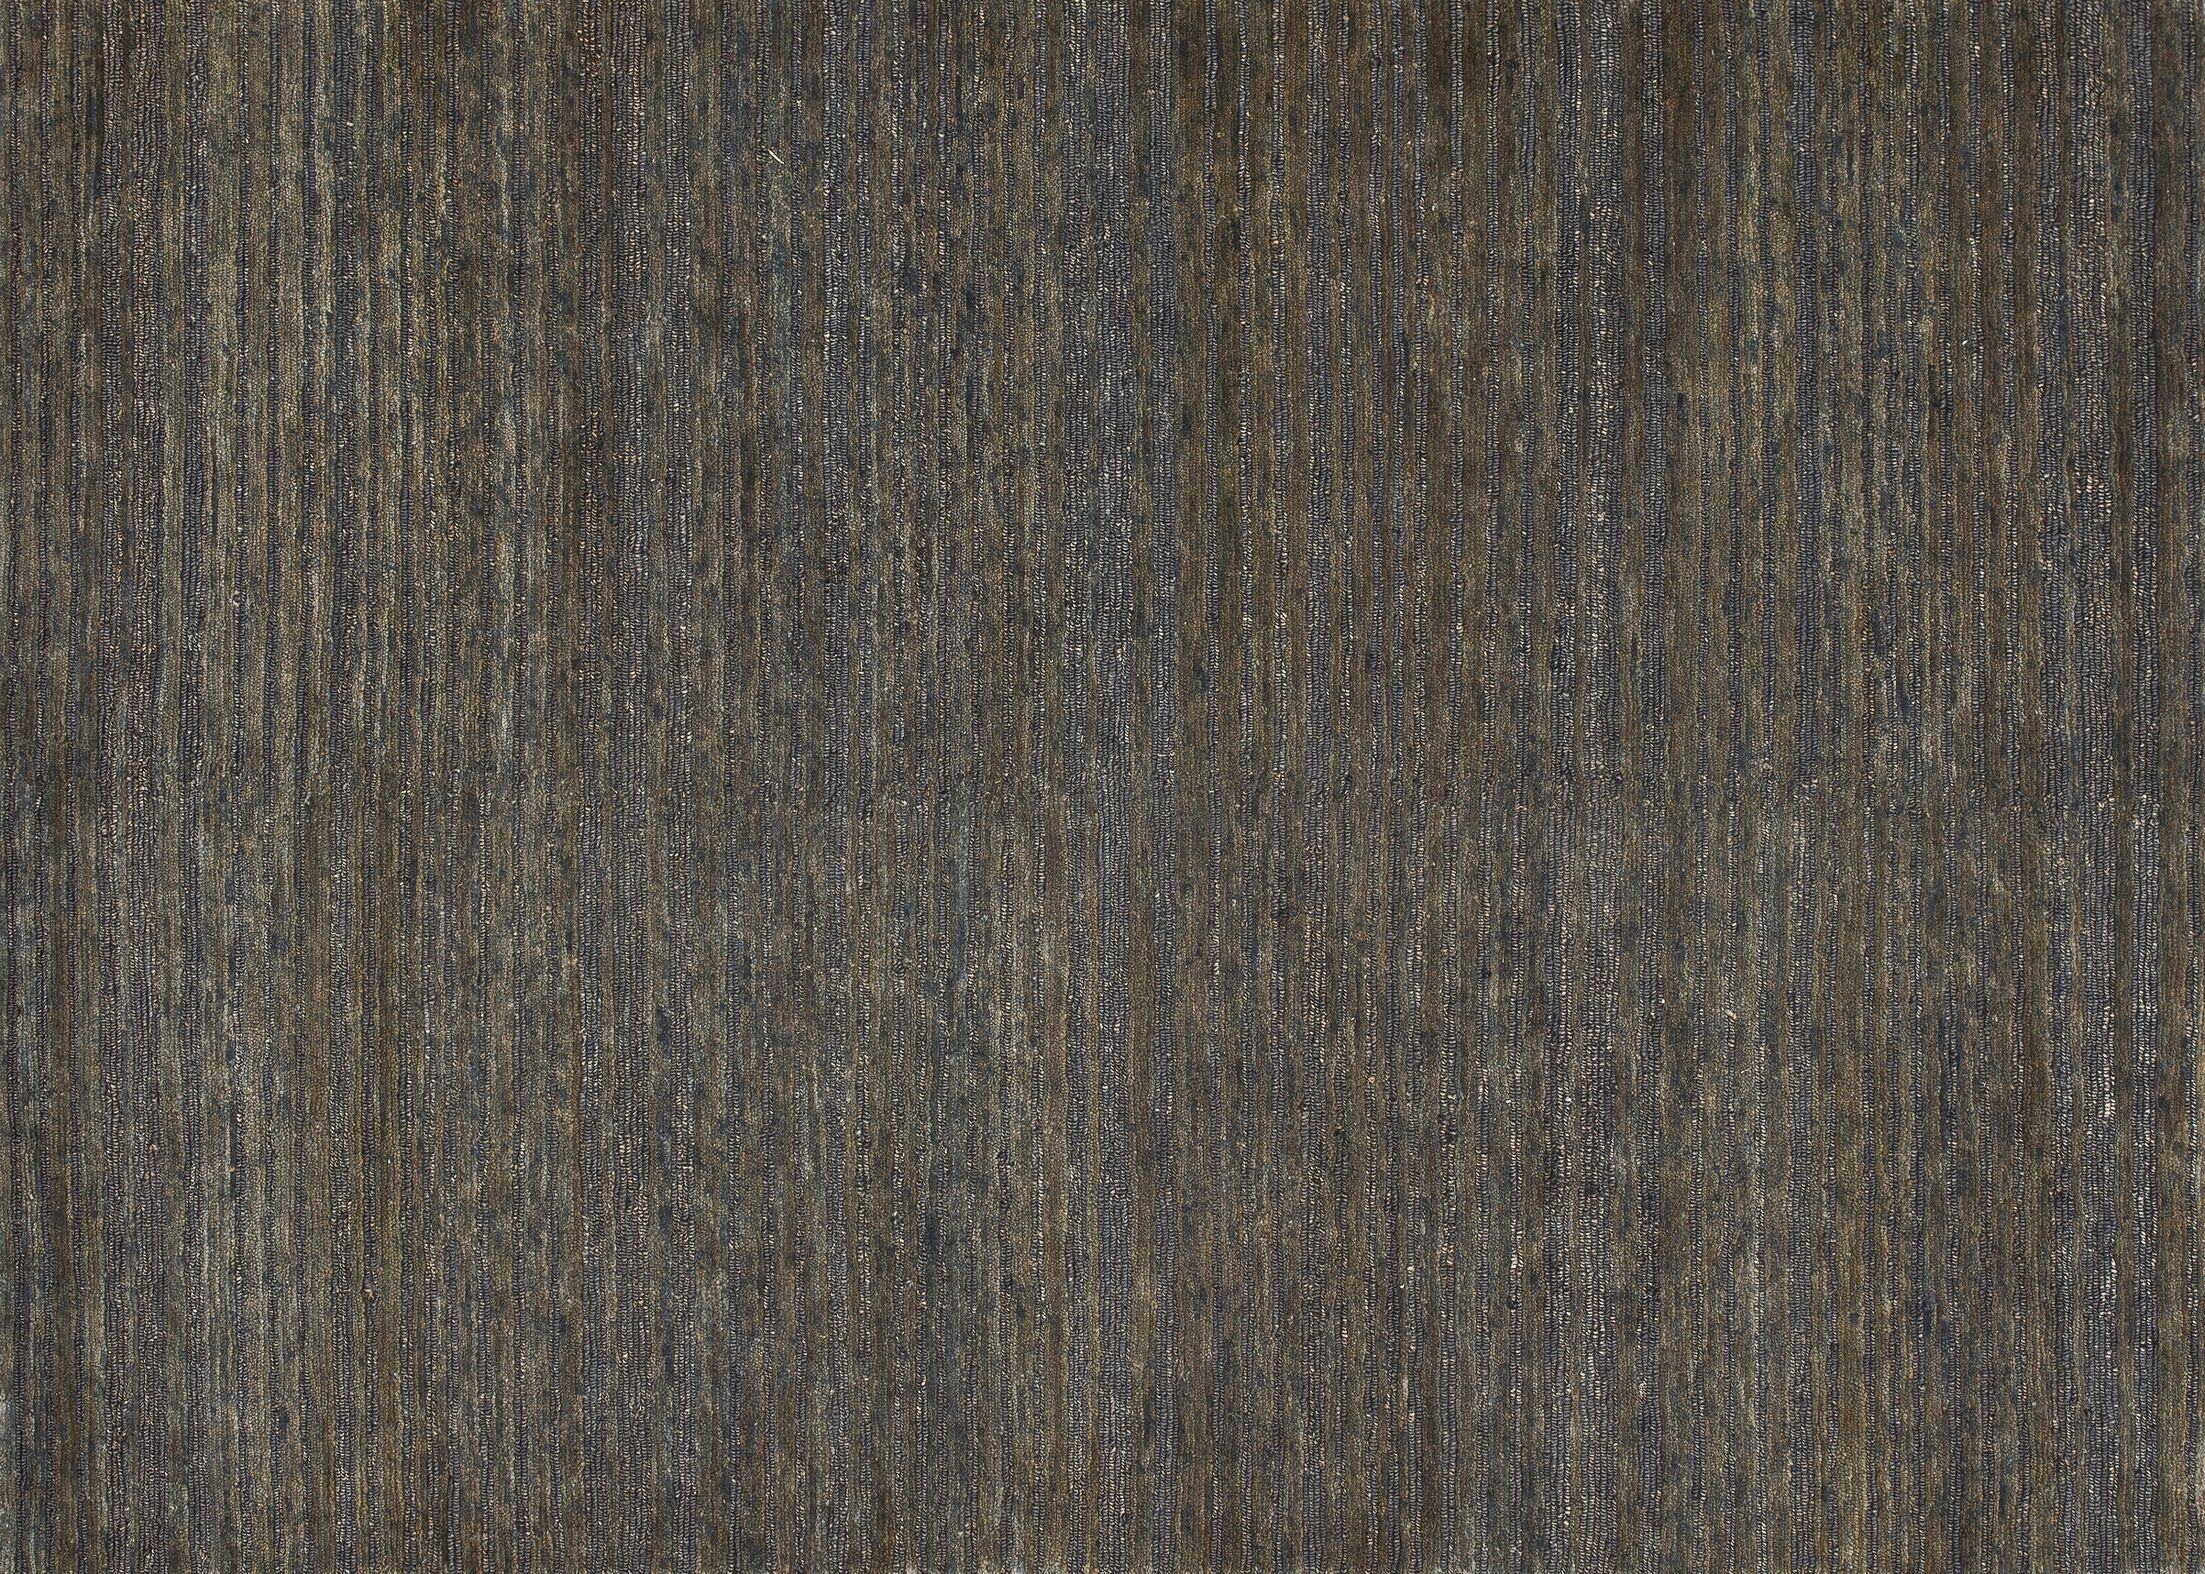 Turley Hand-Knotted Brown Area Rug Rug Size: Rectangle 8'6